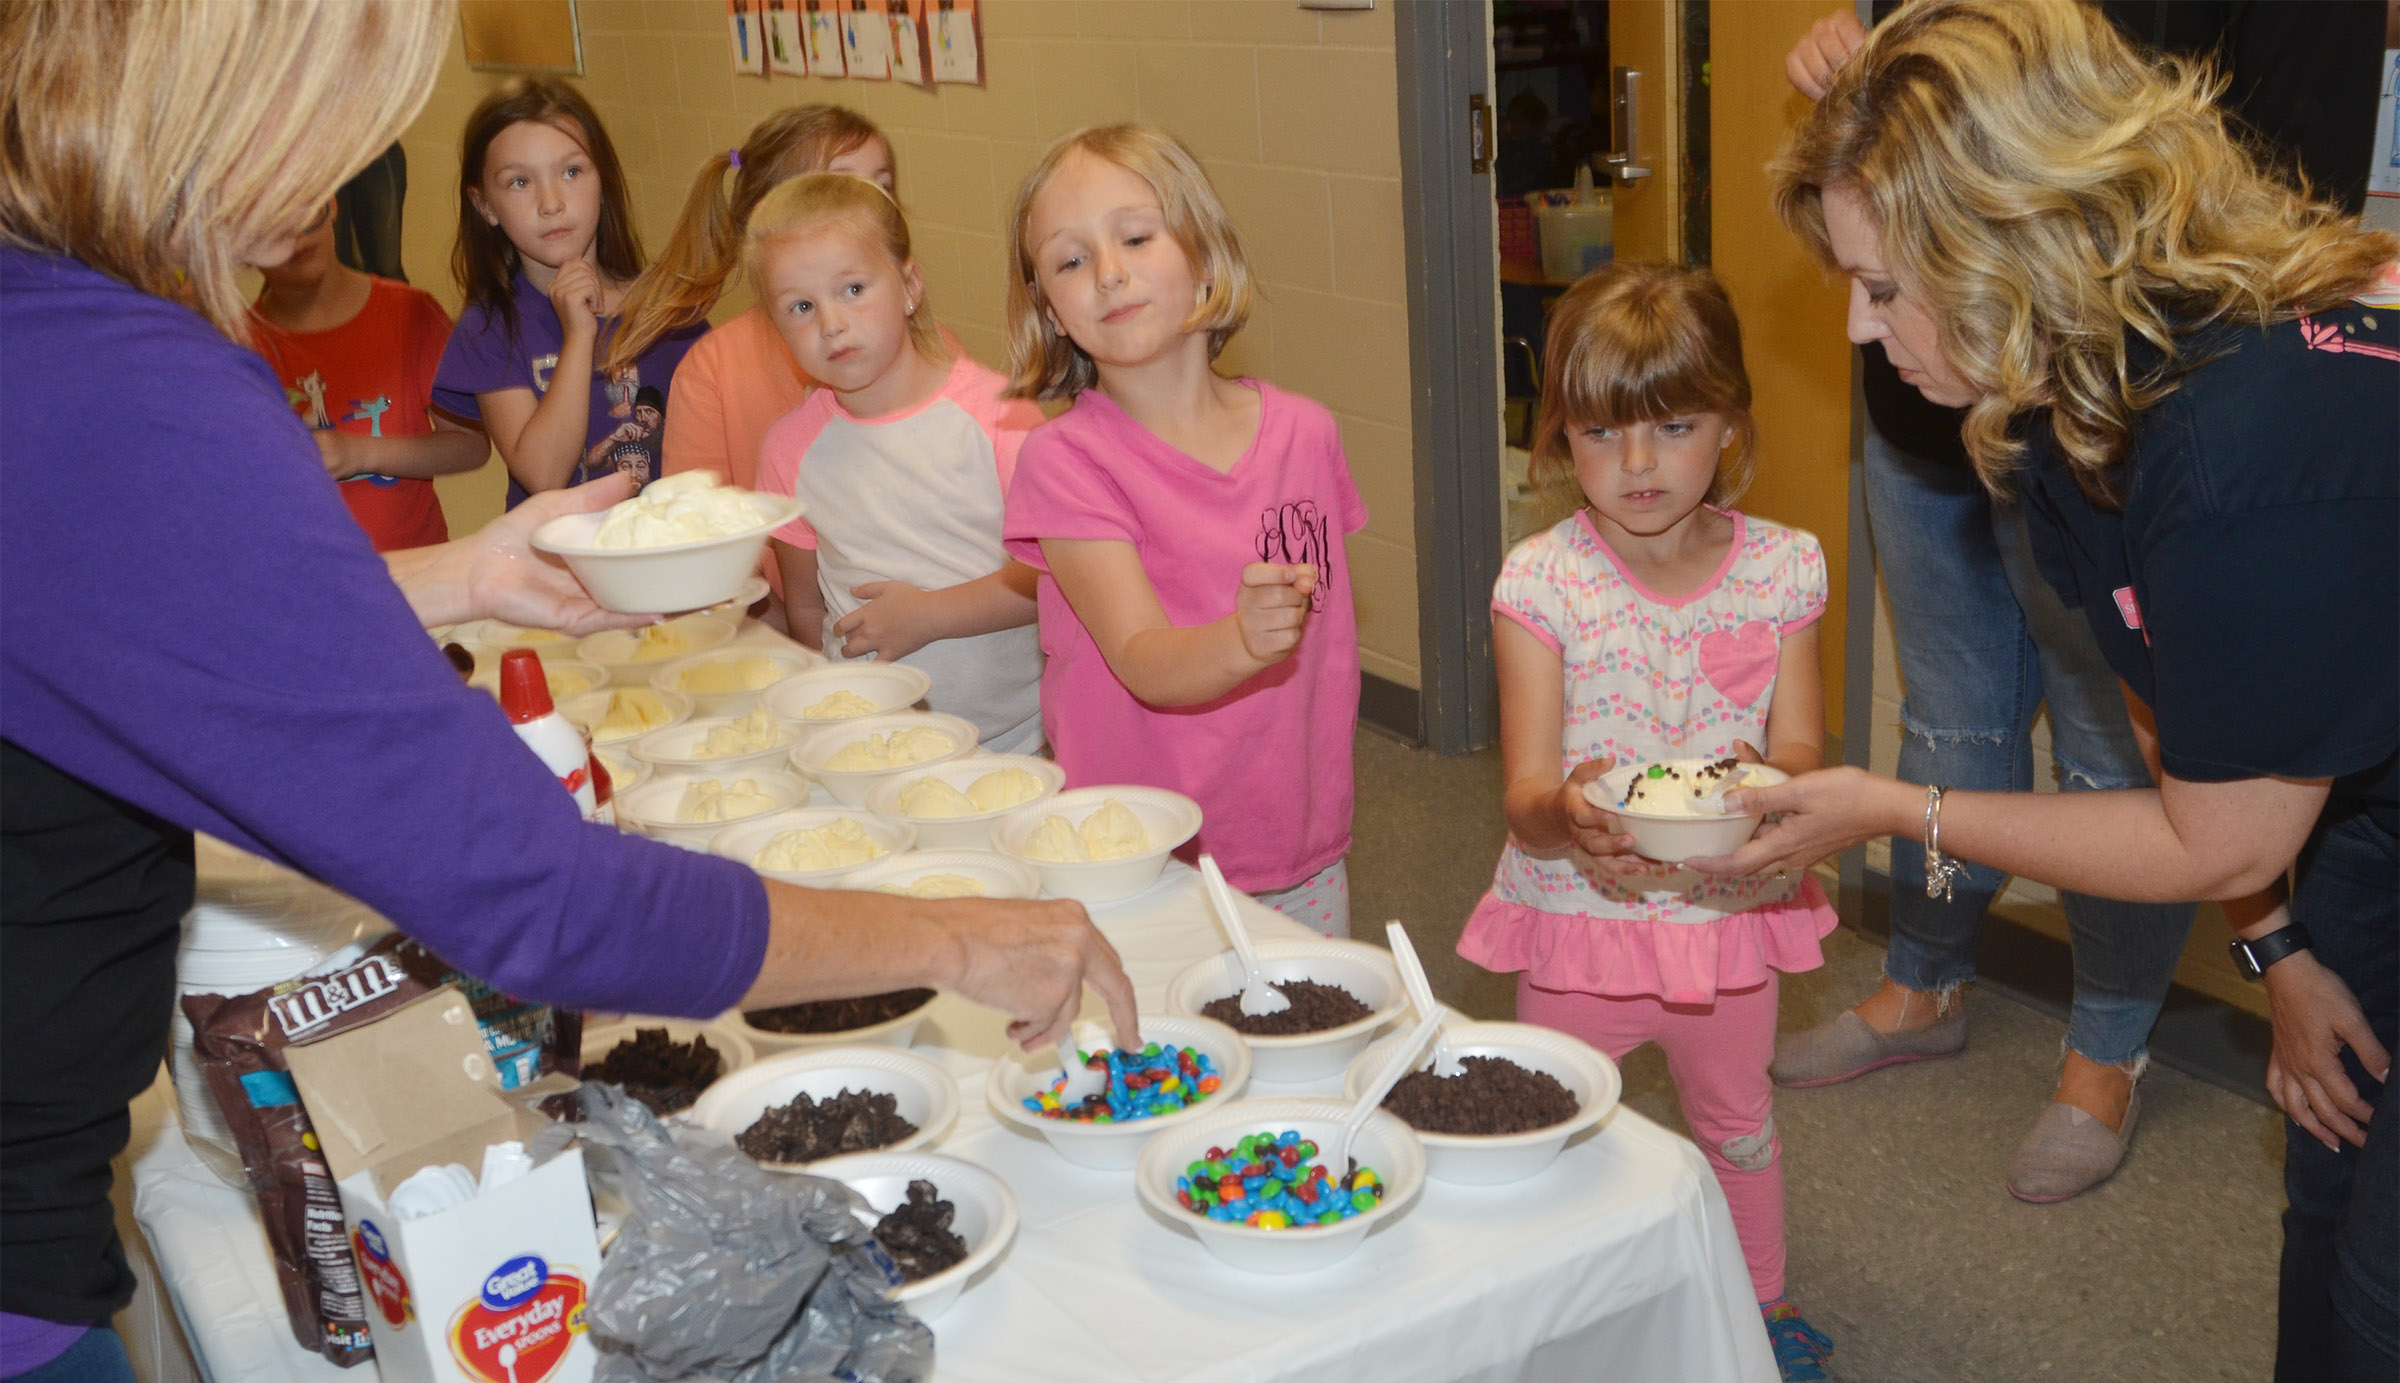 CES kindergartener Madison Wilhoite is served her ice cream sundae.